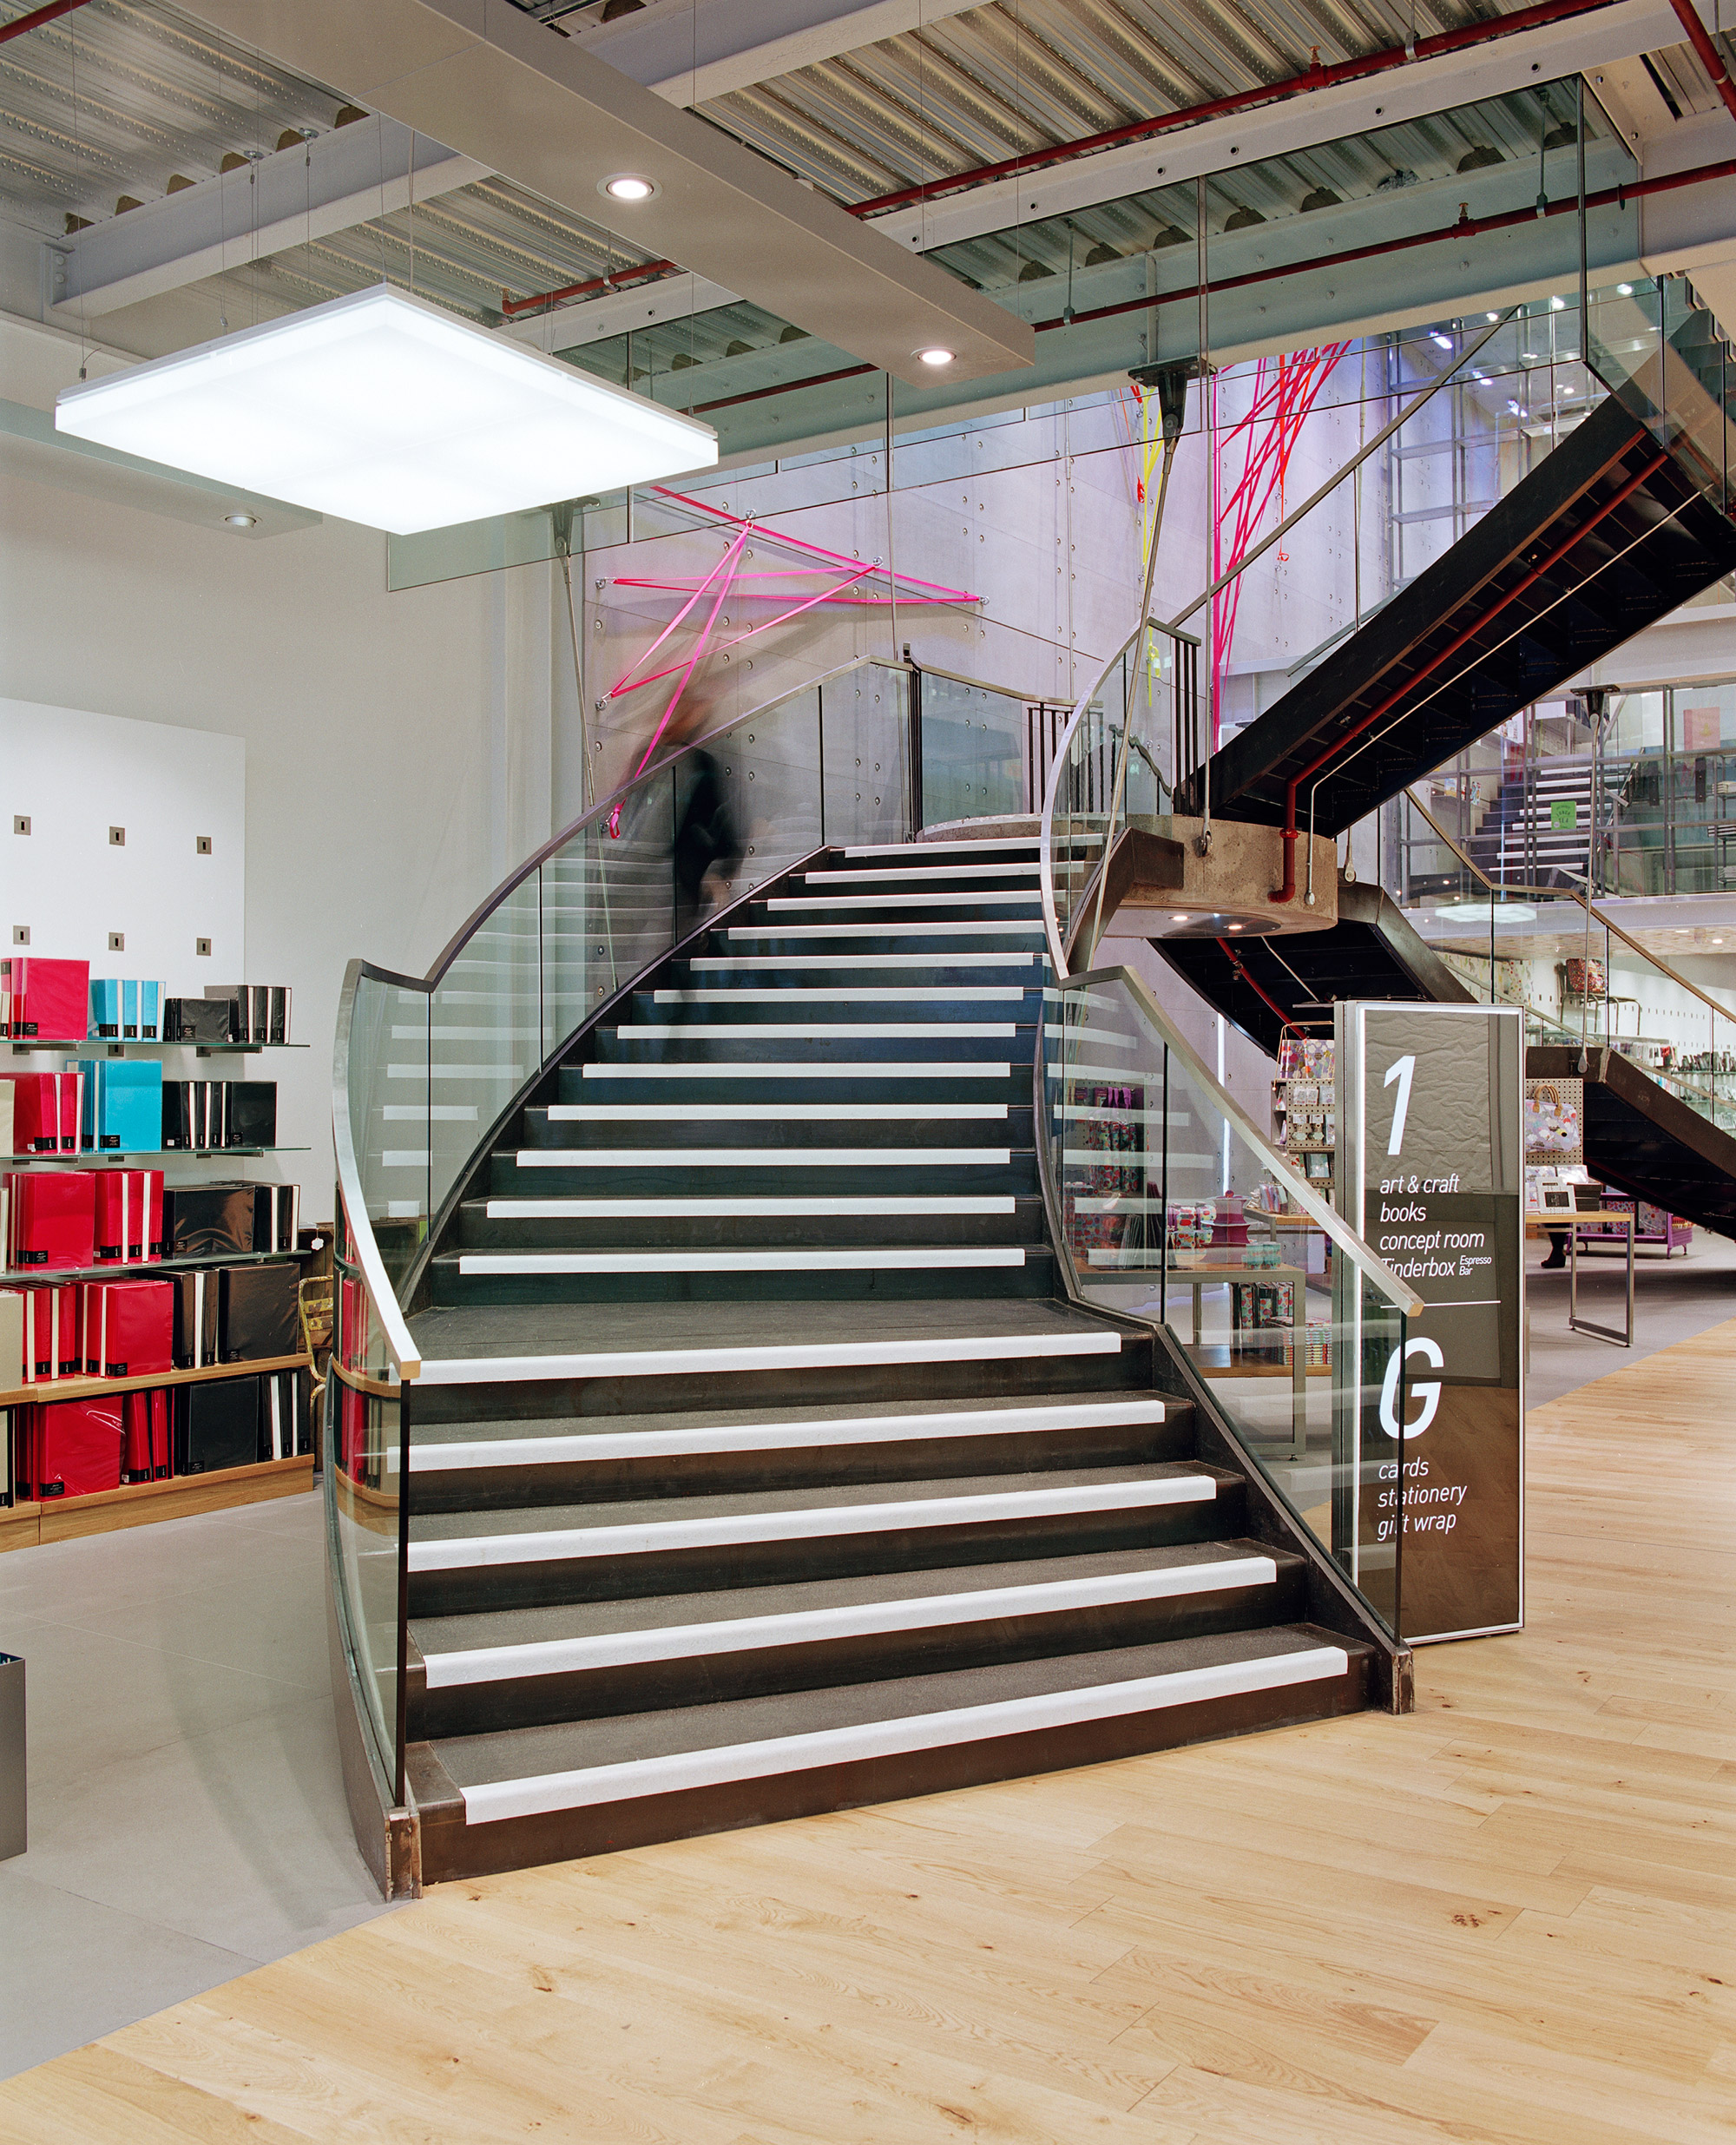 Paperchase Glasgow, curved stair